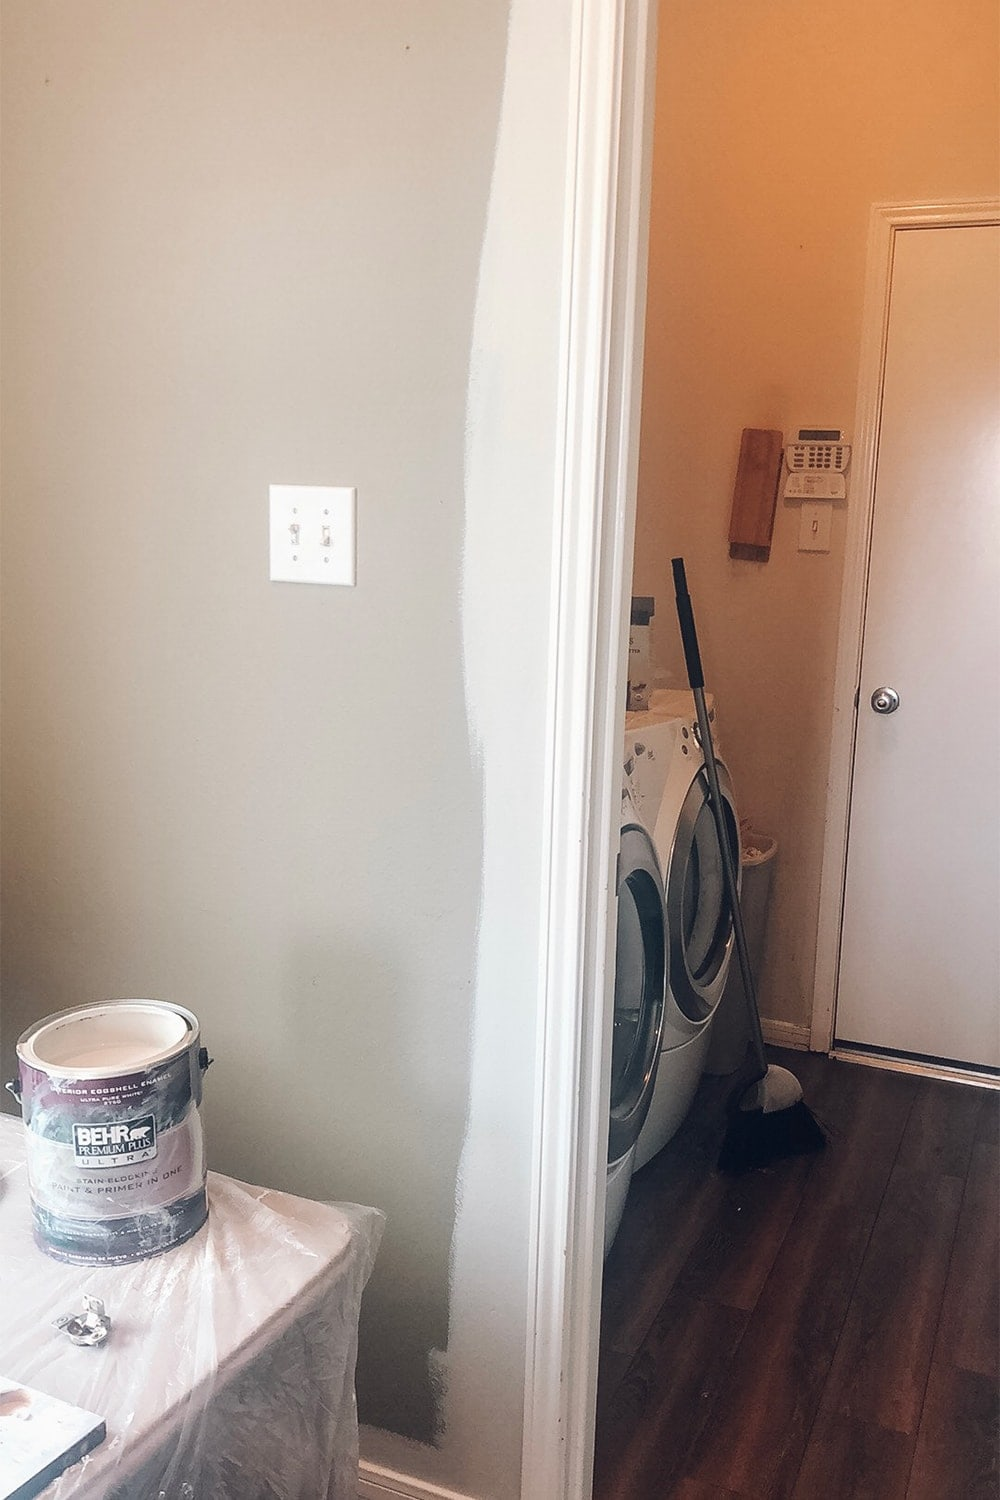 Houston blogger Meg O. on the Go shares how she painted her entire kitchen including the cabinets and backsplash for under $250